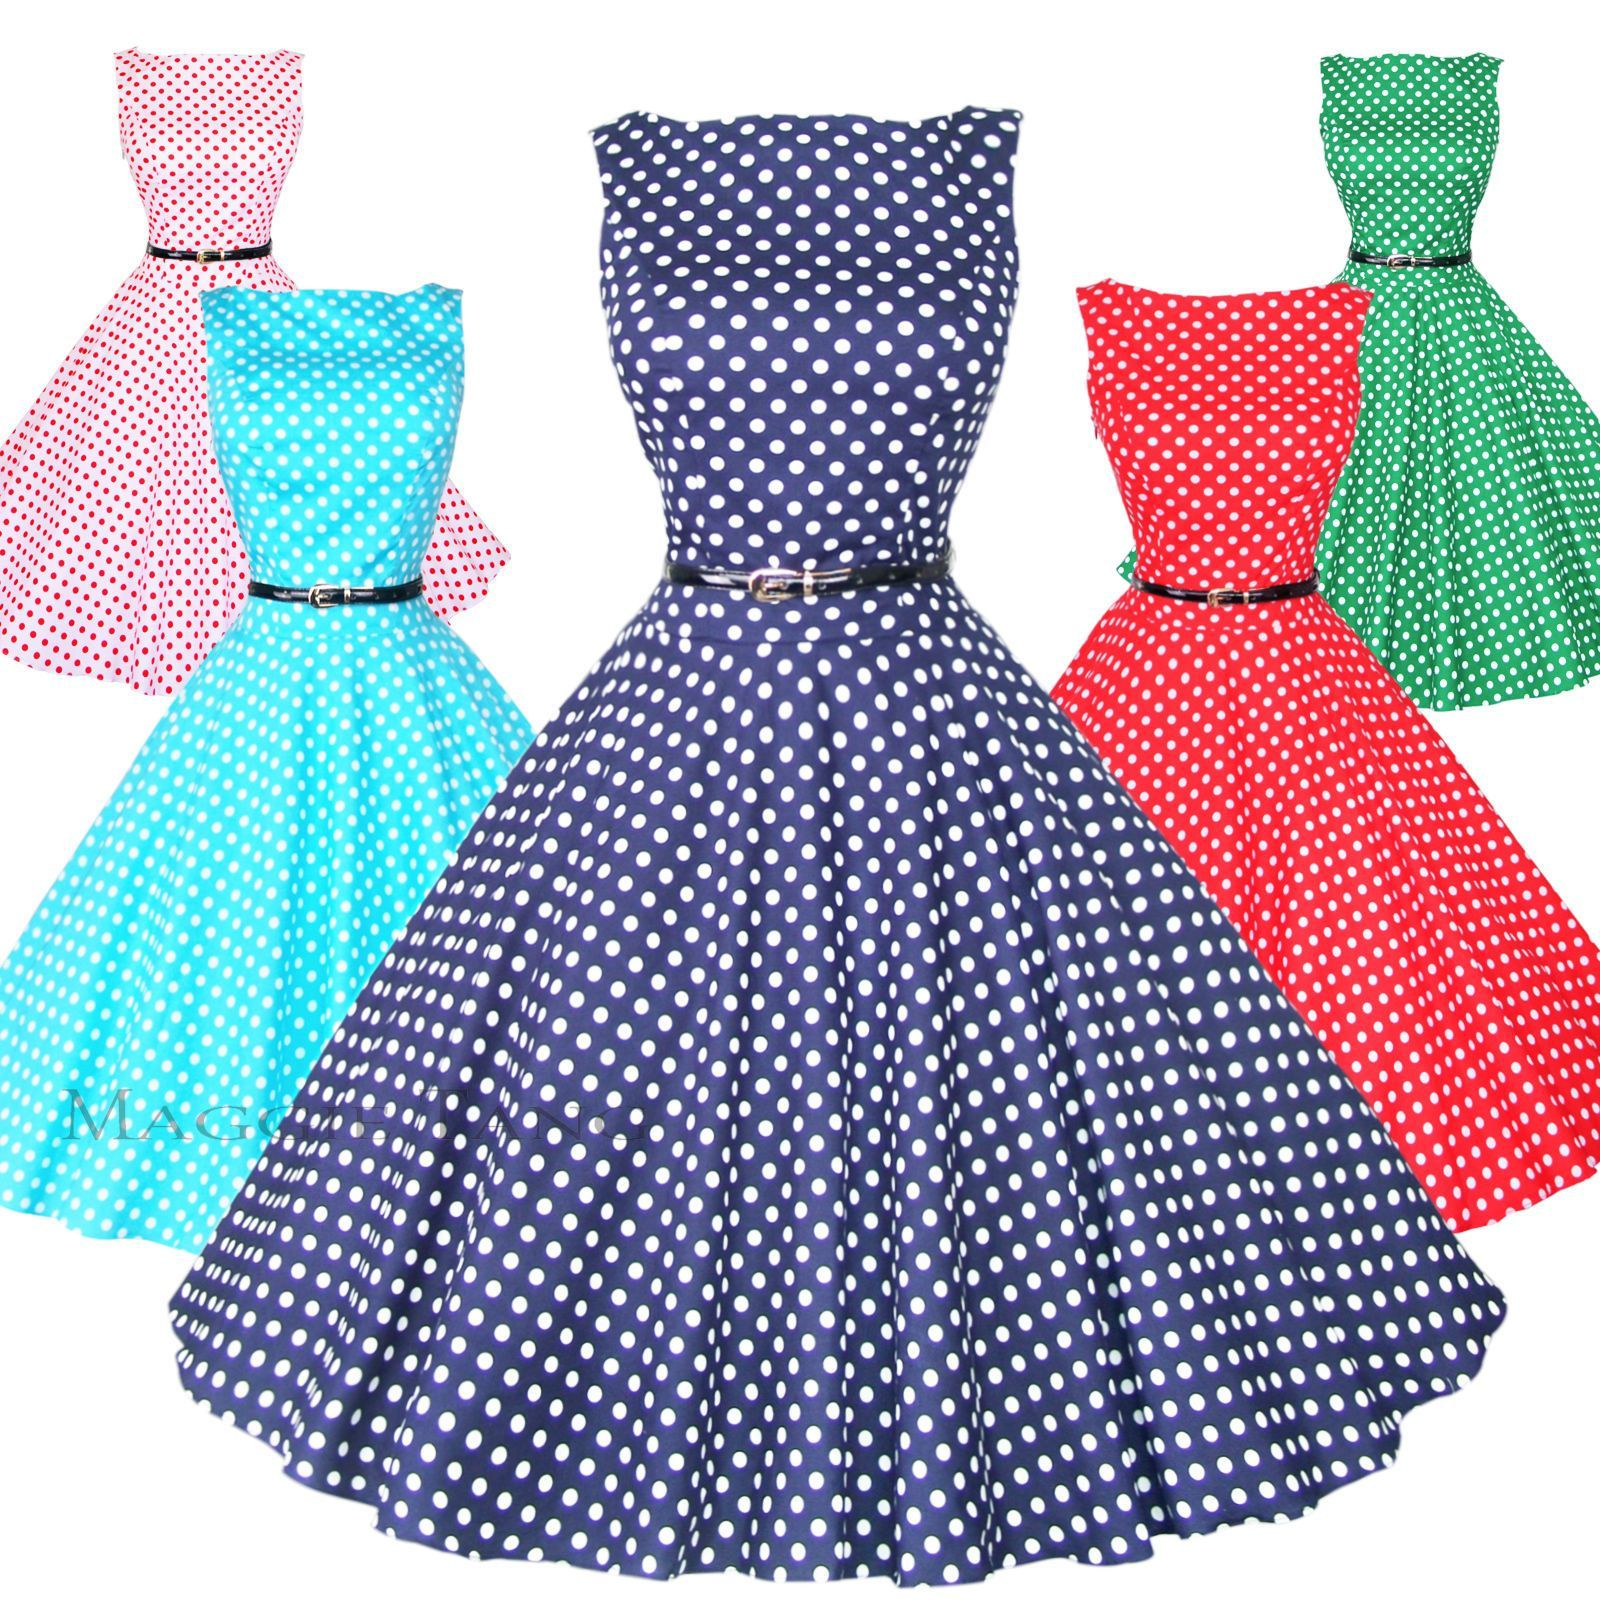 1ddc5a67291 Maggie Tang 50S Vtg Retro Pinup Rockabilly Polka Dot Housewife Swing Dress  K-533